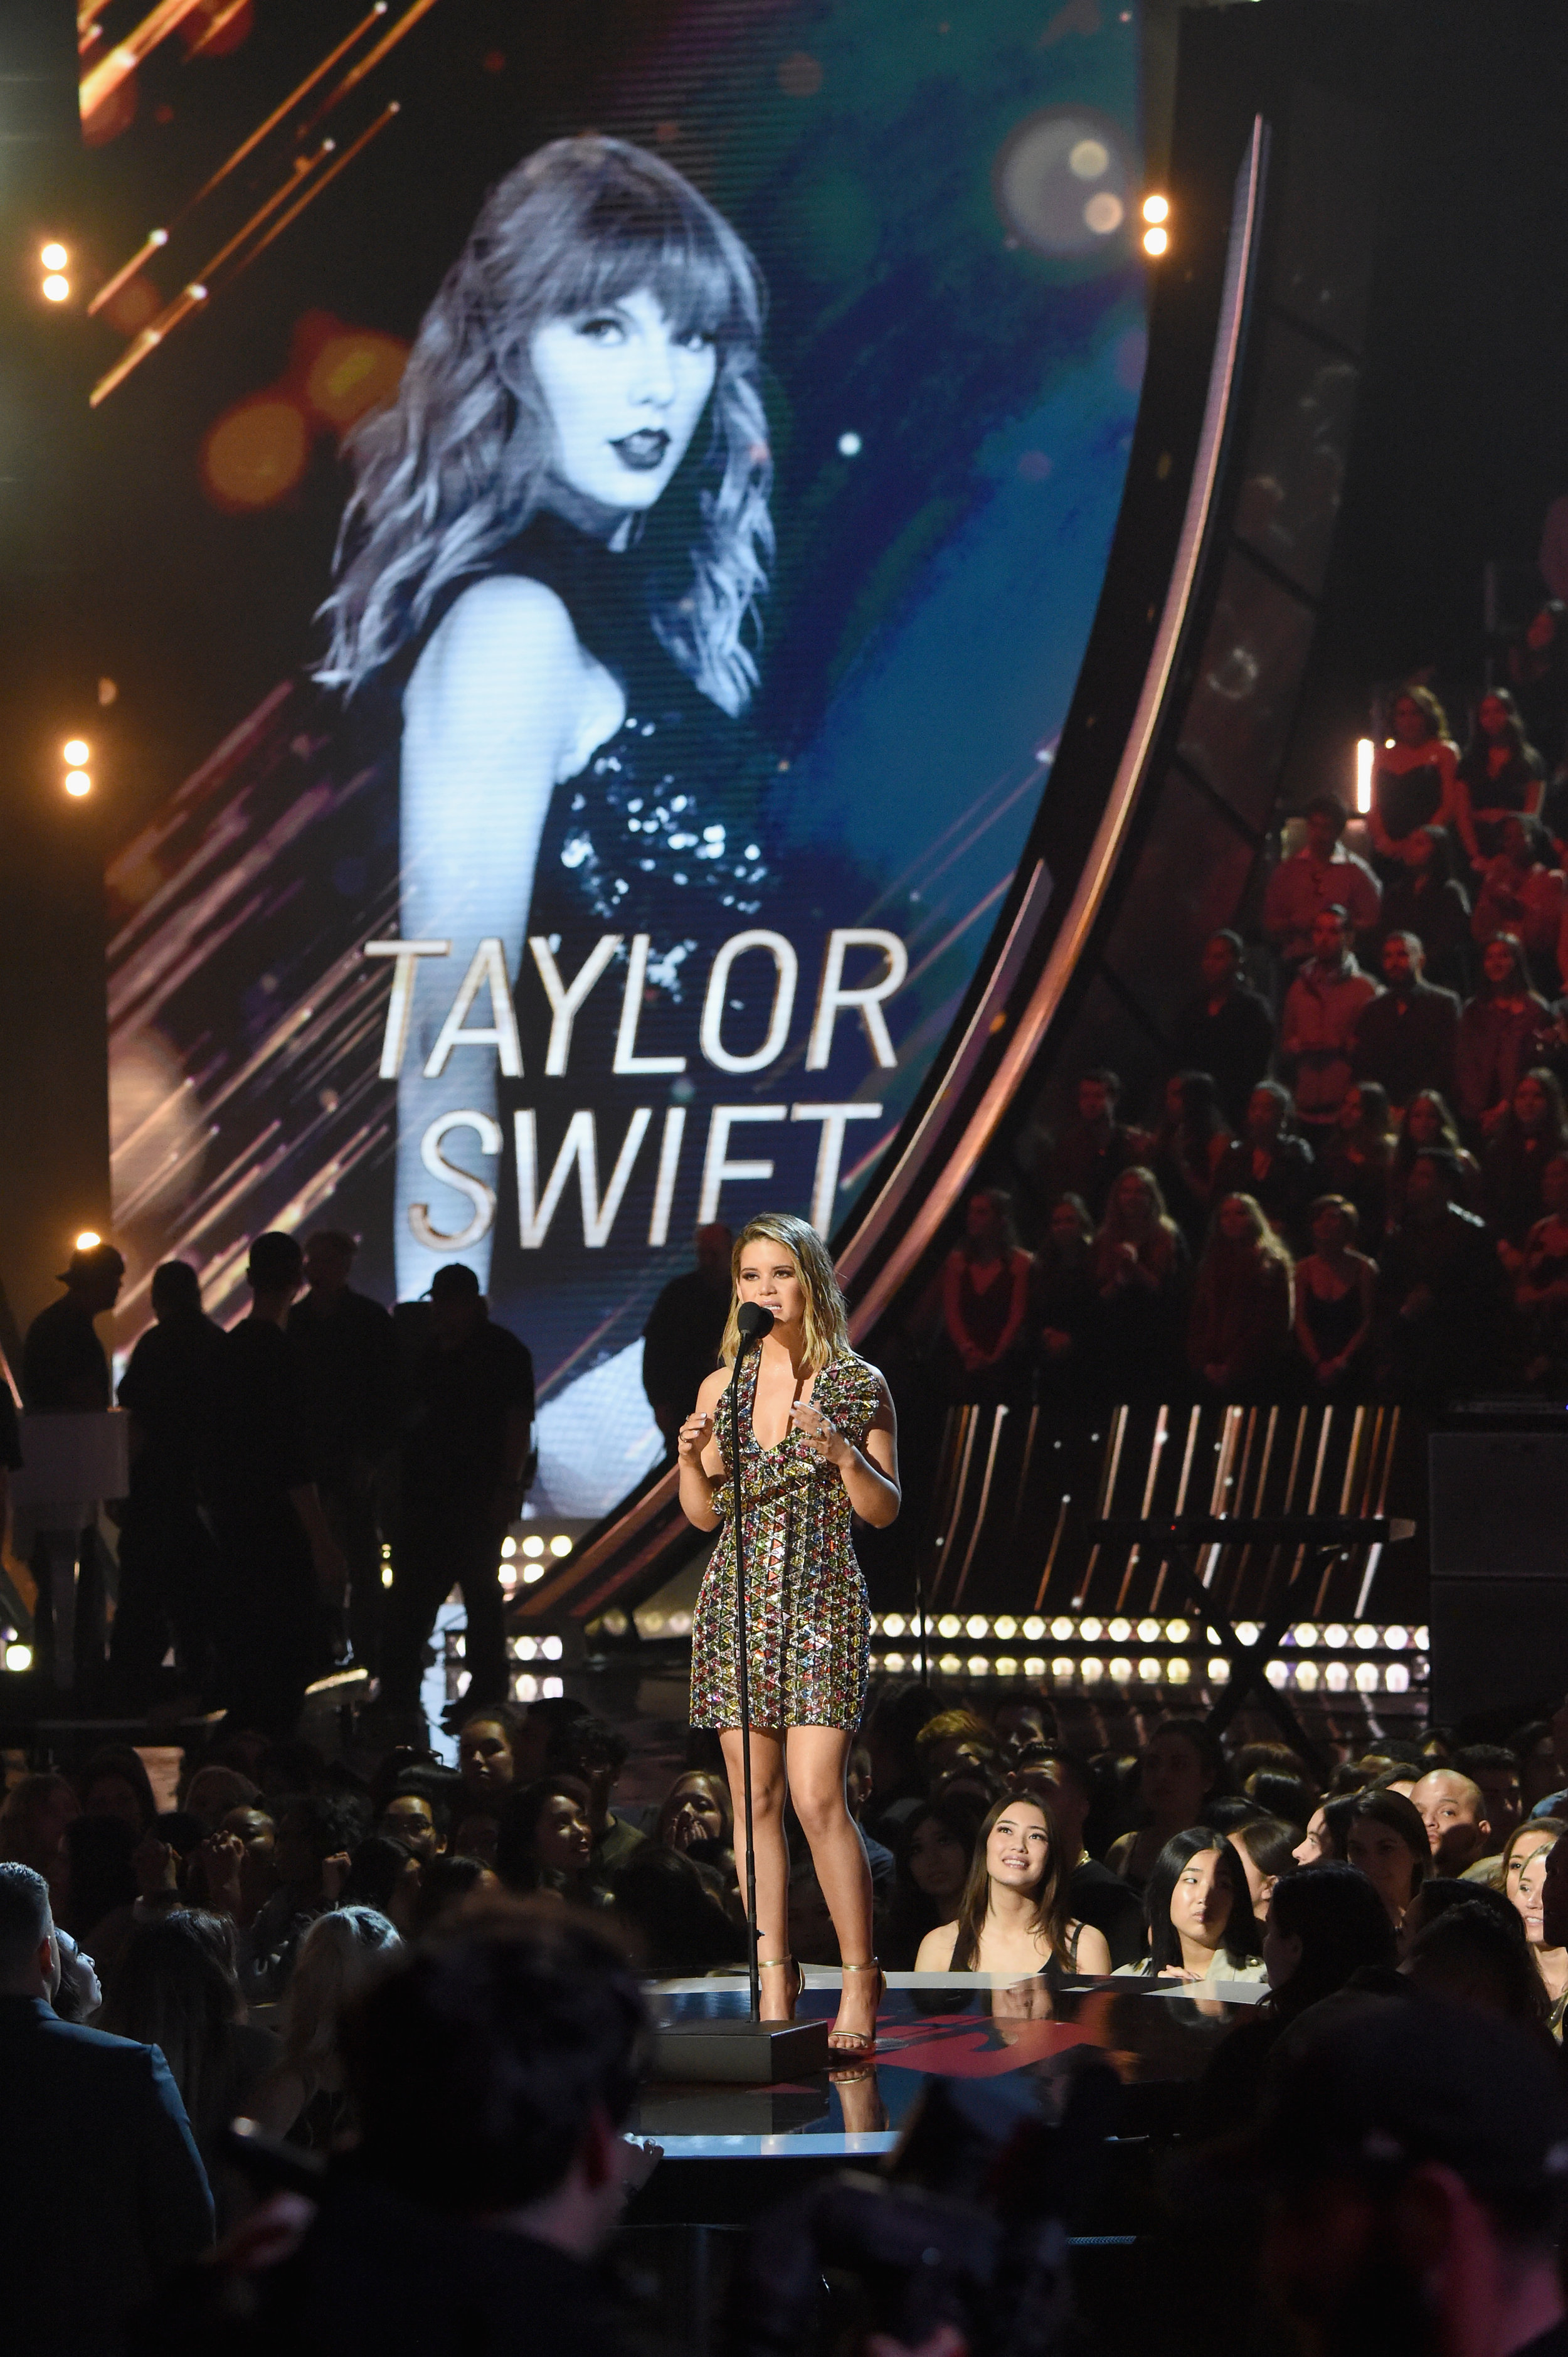 The 2019 iHeartRadio Music Awards in LA on March 14, 2019